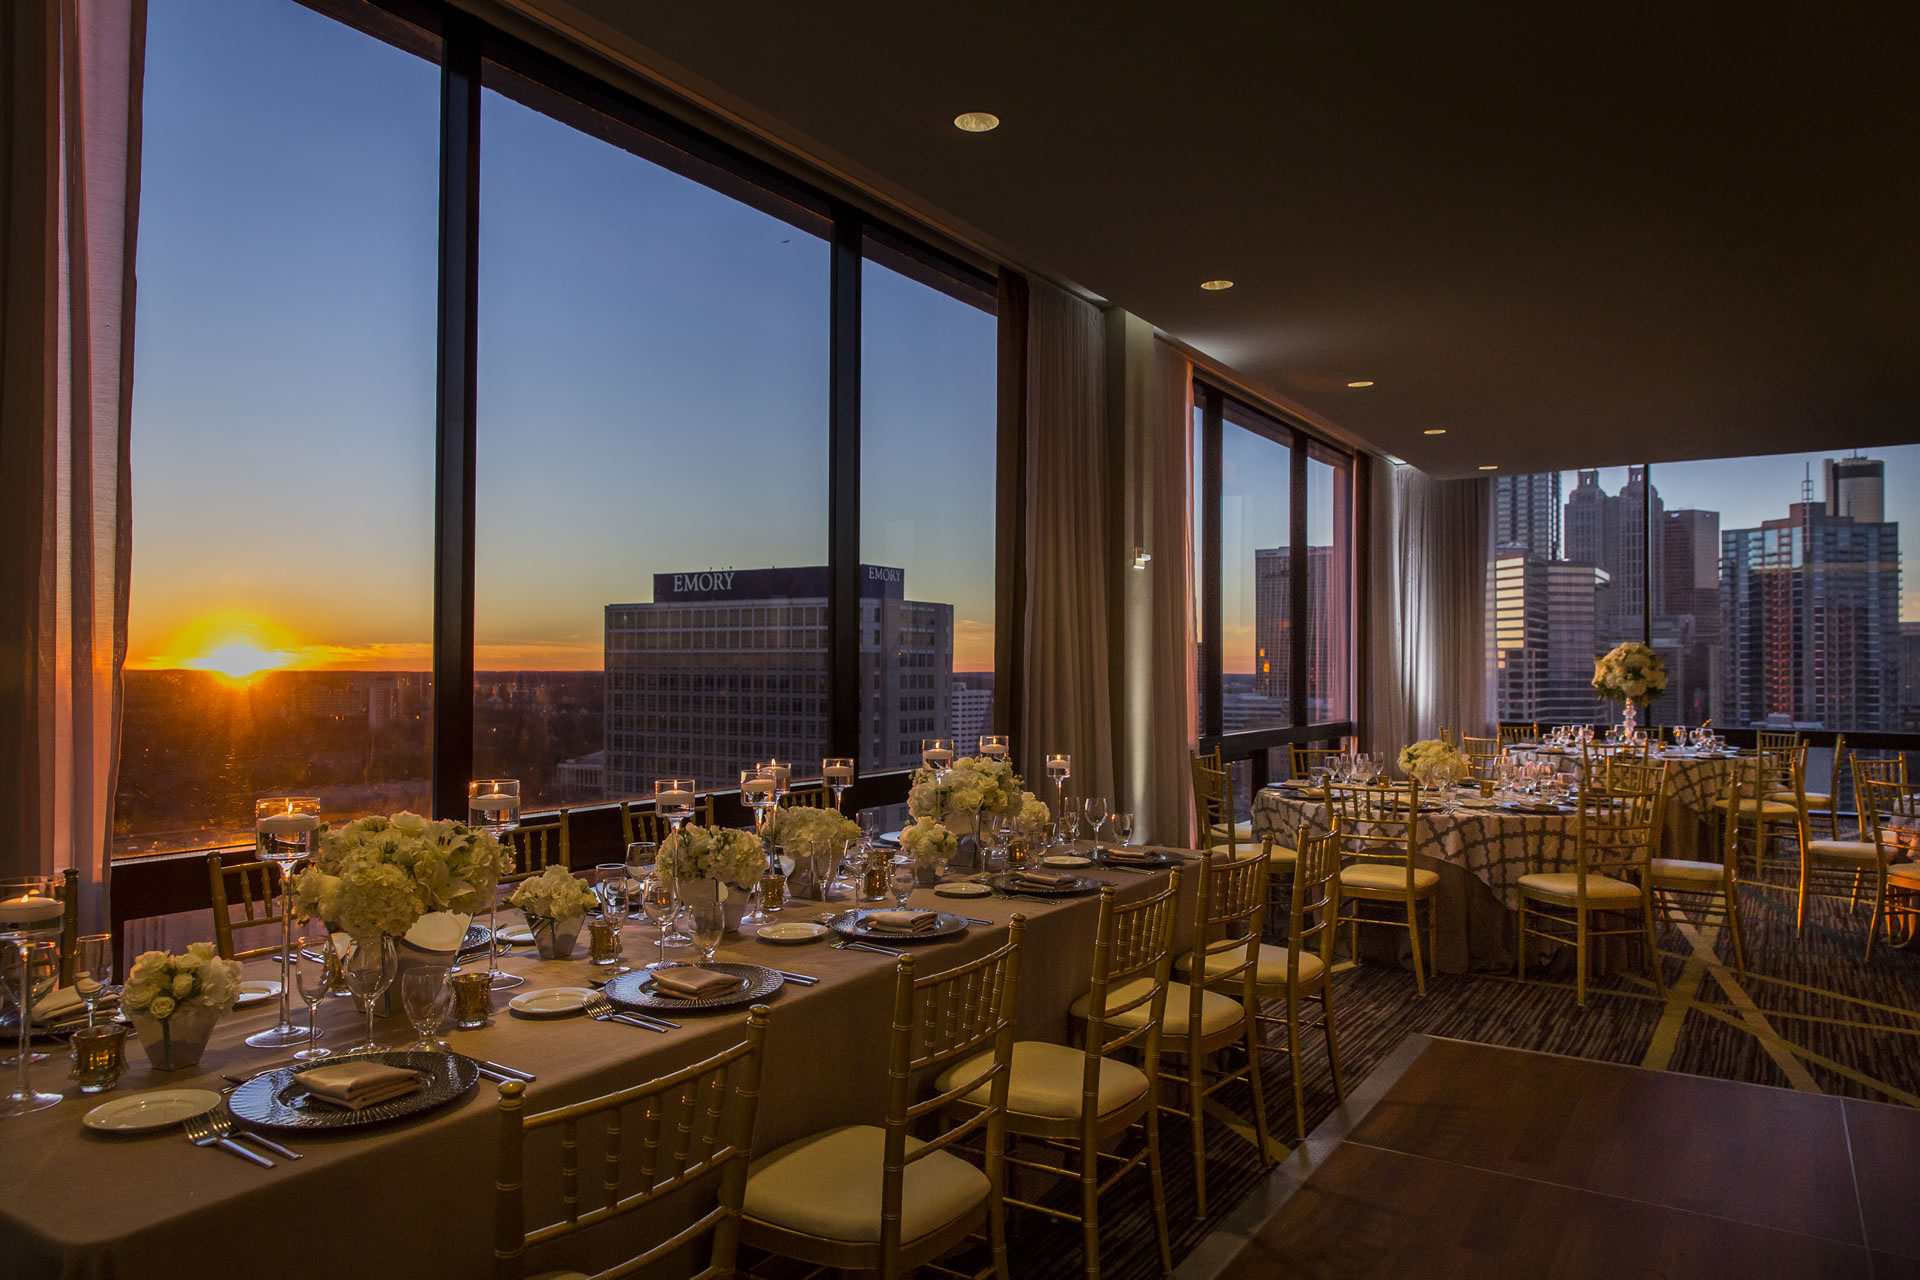 Close up of wedding table setting at sunset in the SKY Room East.